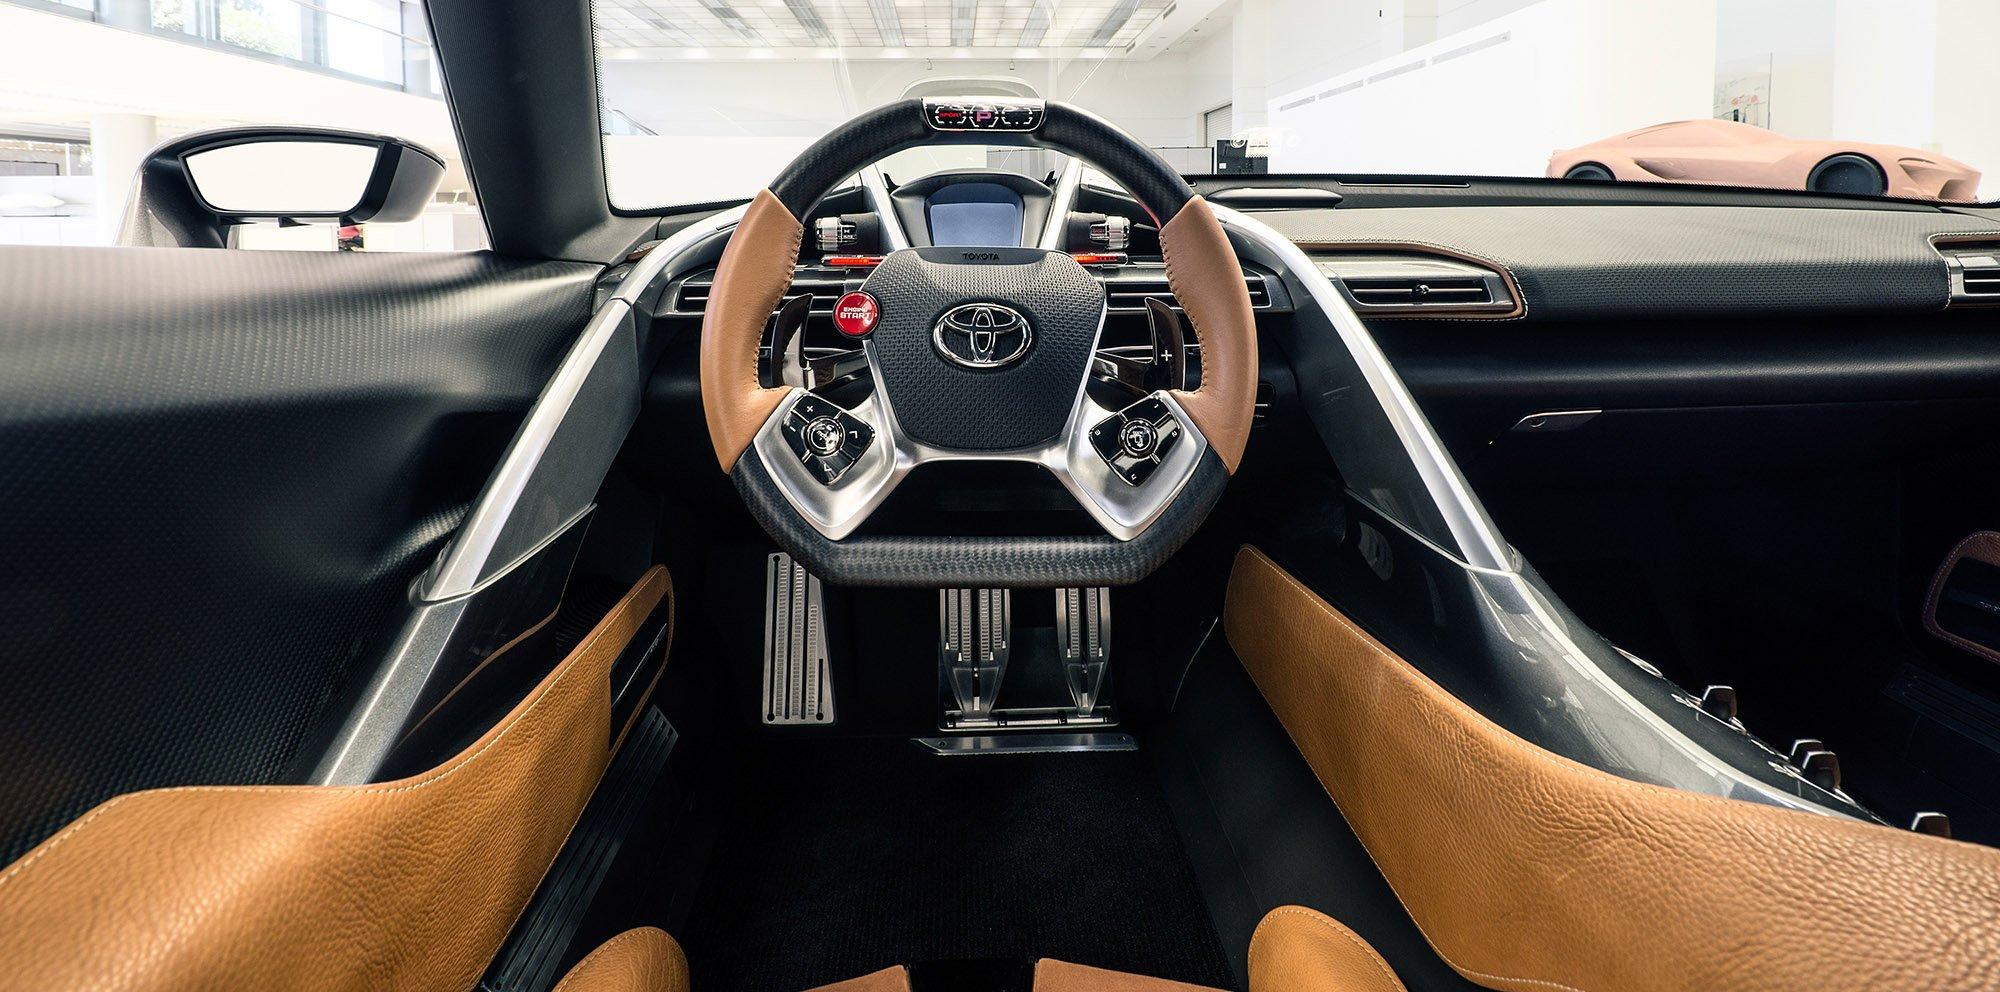 toyota ft 1 concept car sports new grey exterior classier interior photos caradvice. Black Bedroom Furniture Sets. Home Design Ideas